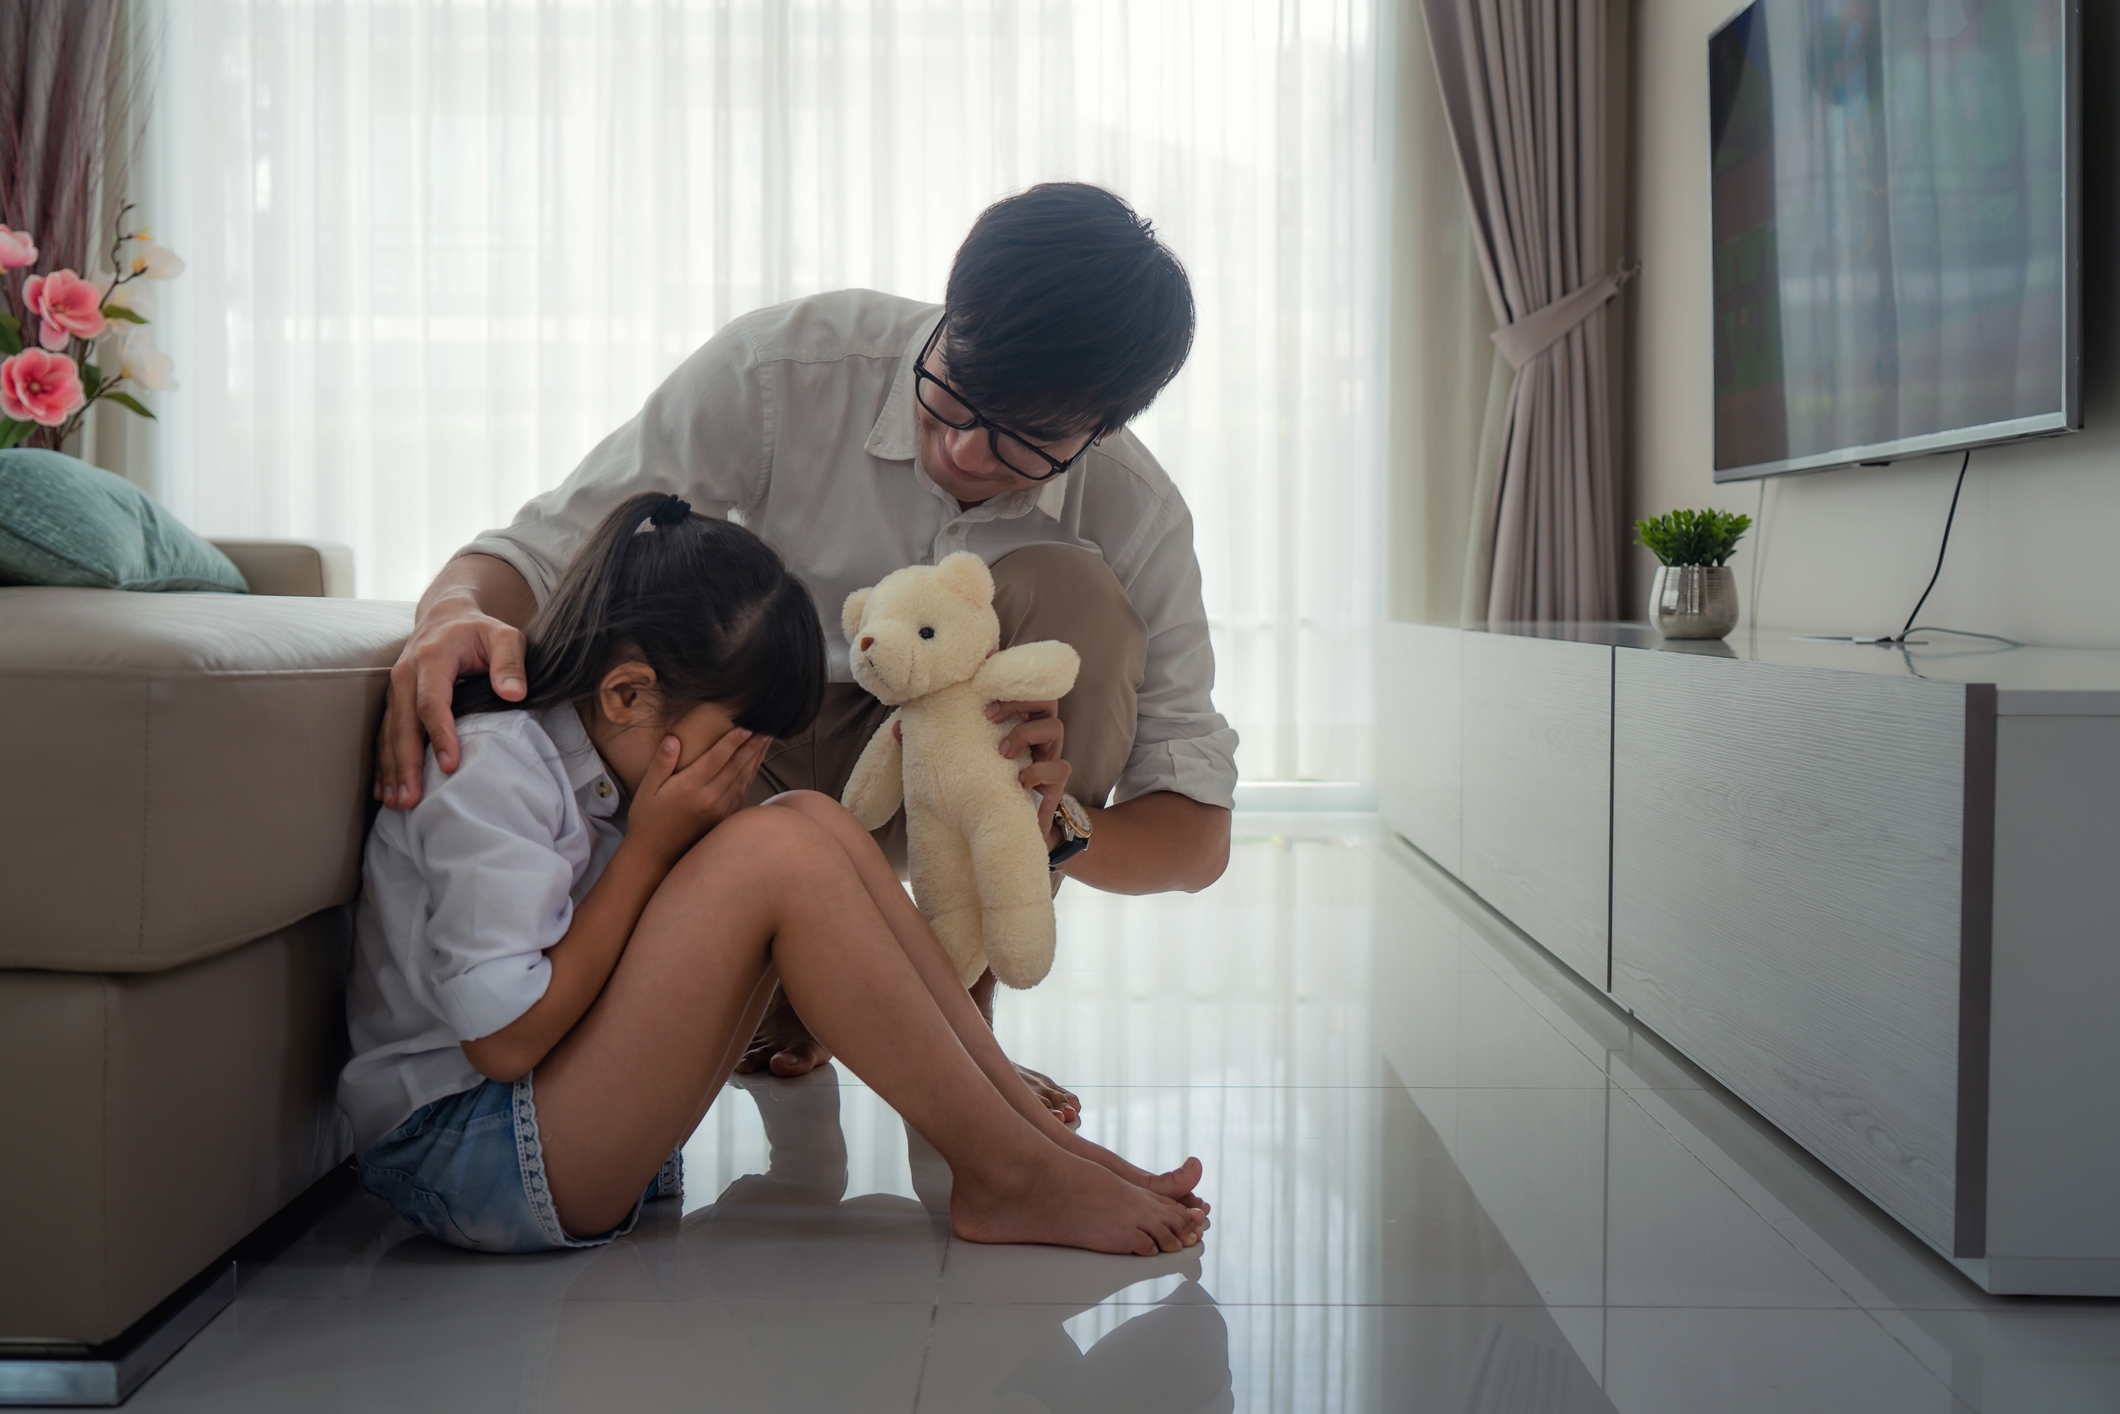 Your child doesn't want to be comforted